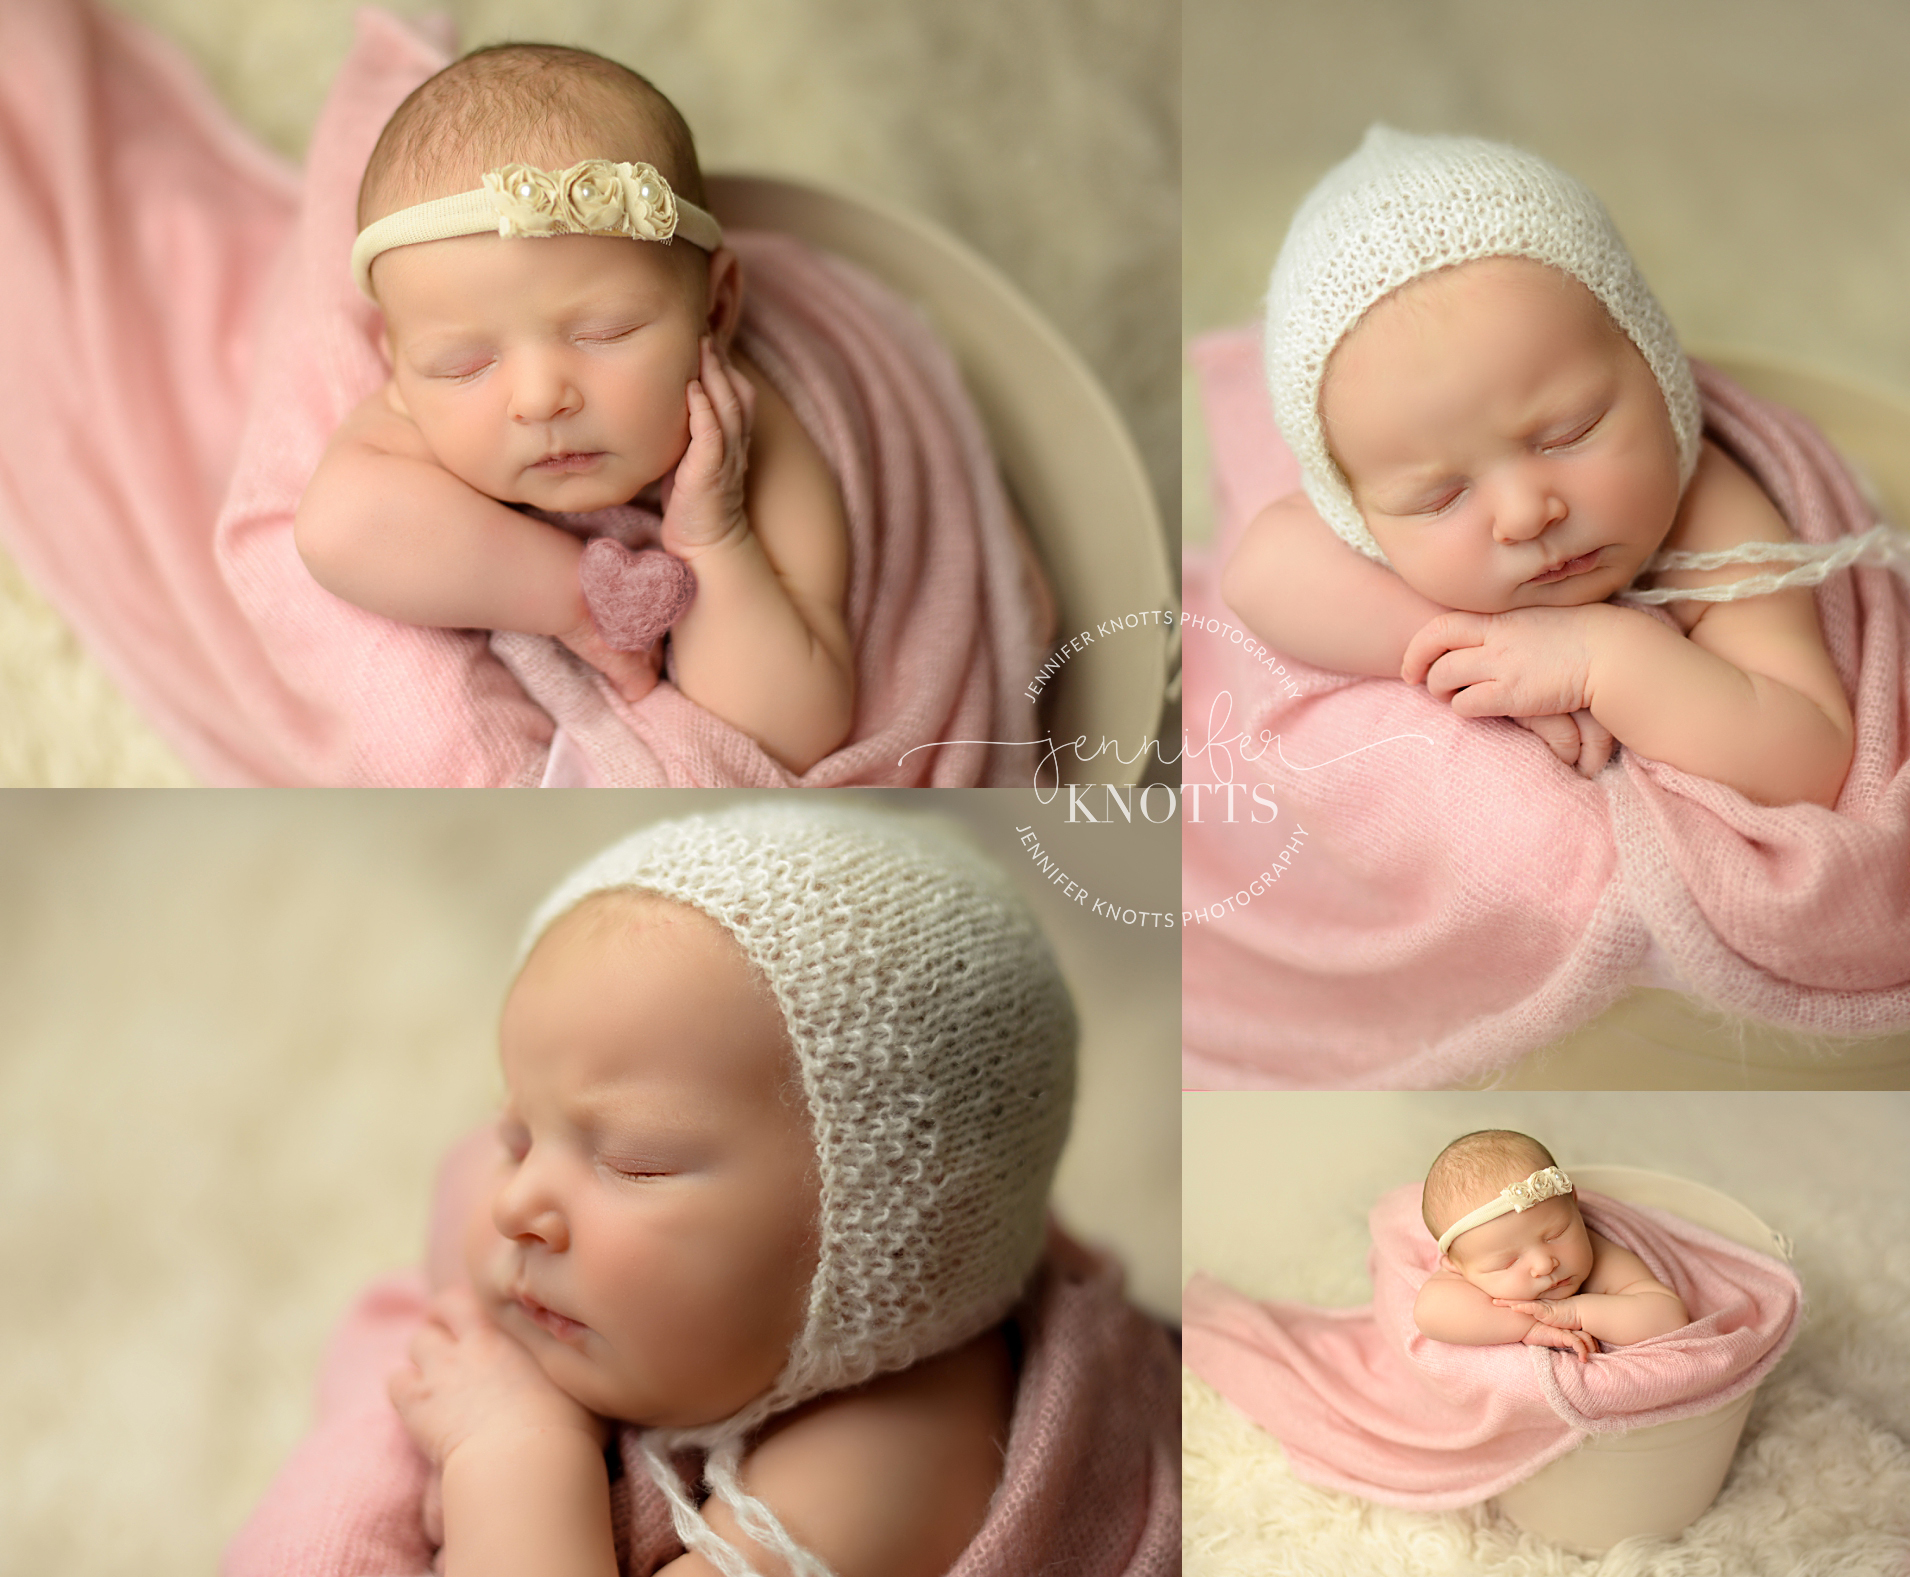 Wilmington newborn photographer captures baby girl sleeping in cream bucket